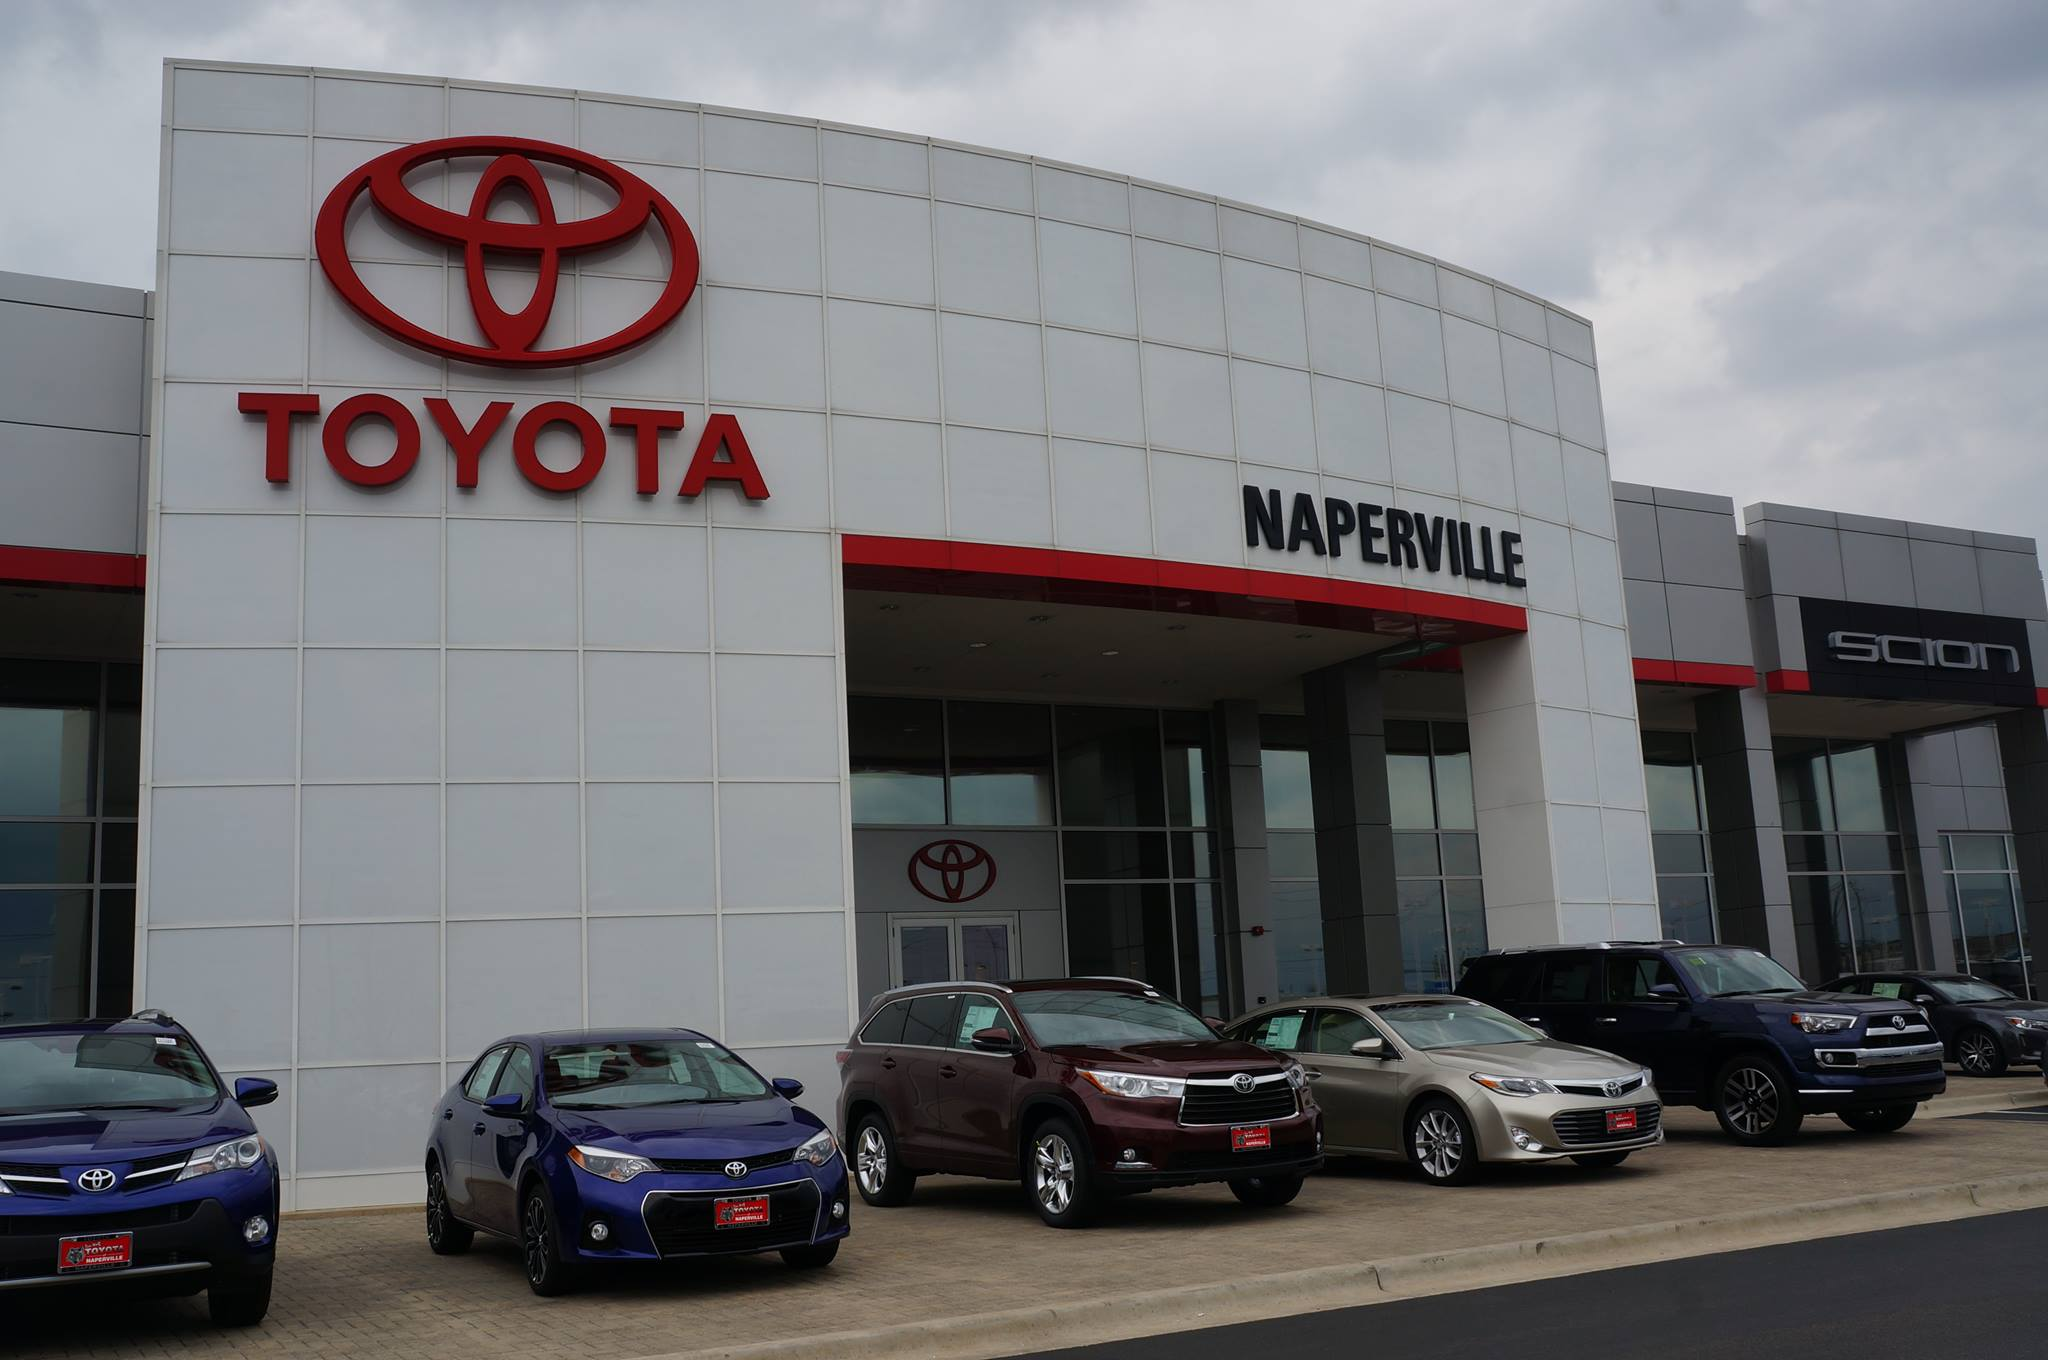 Stop by toyota of naperville today